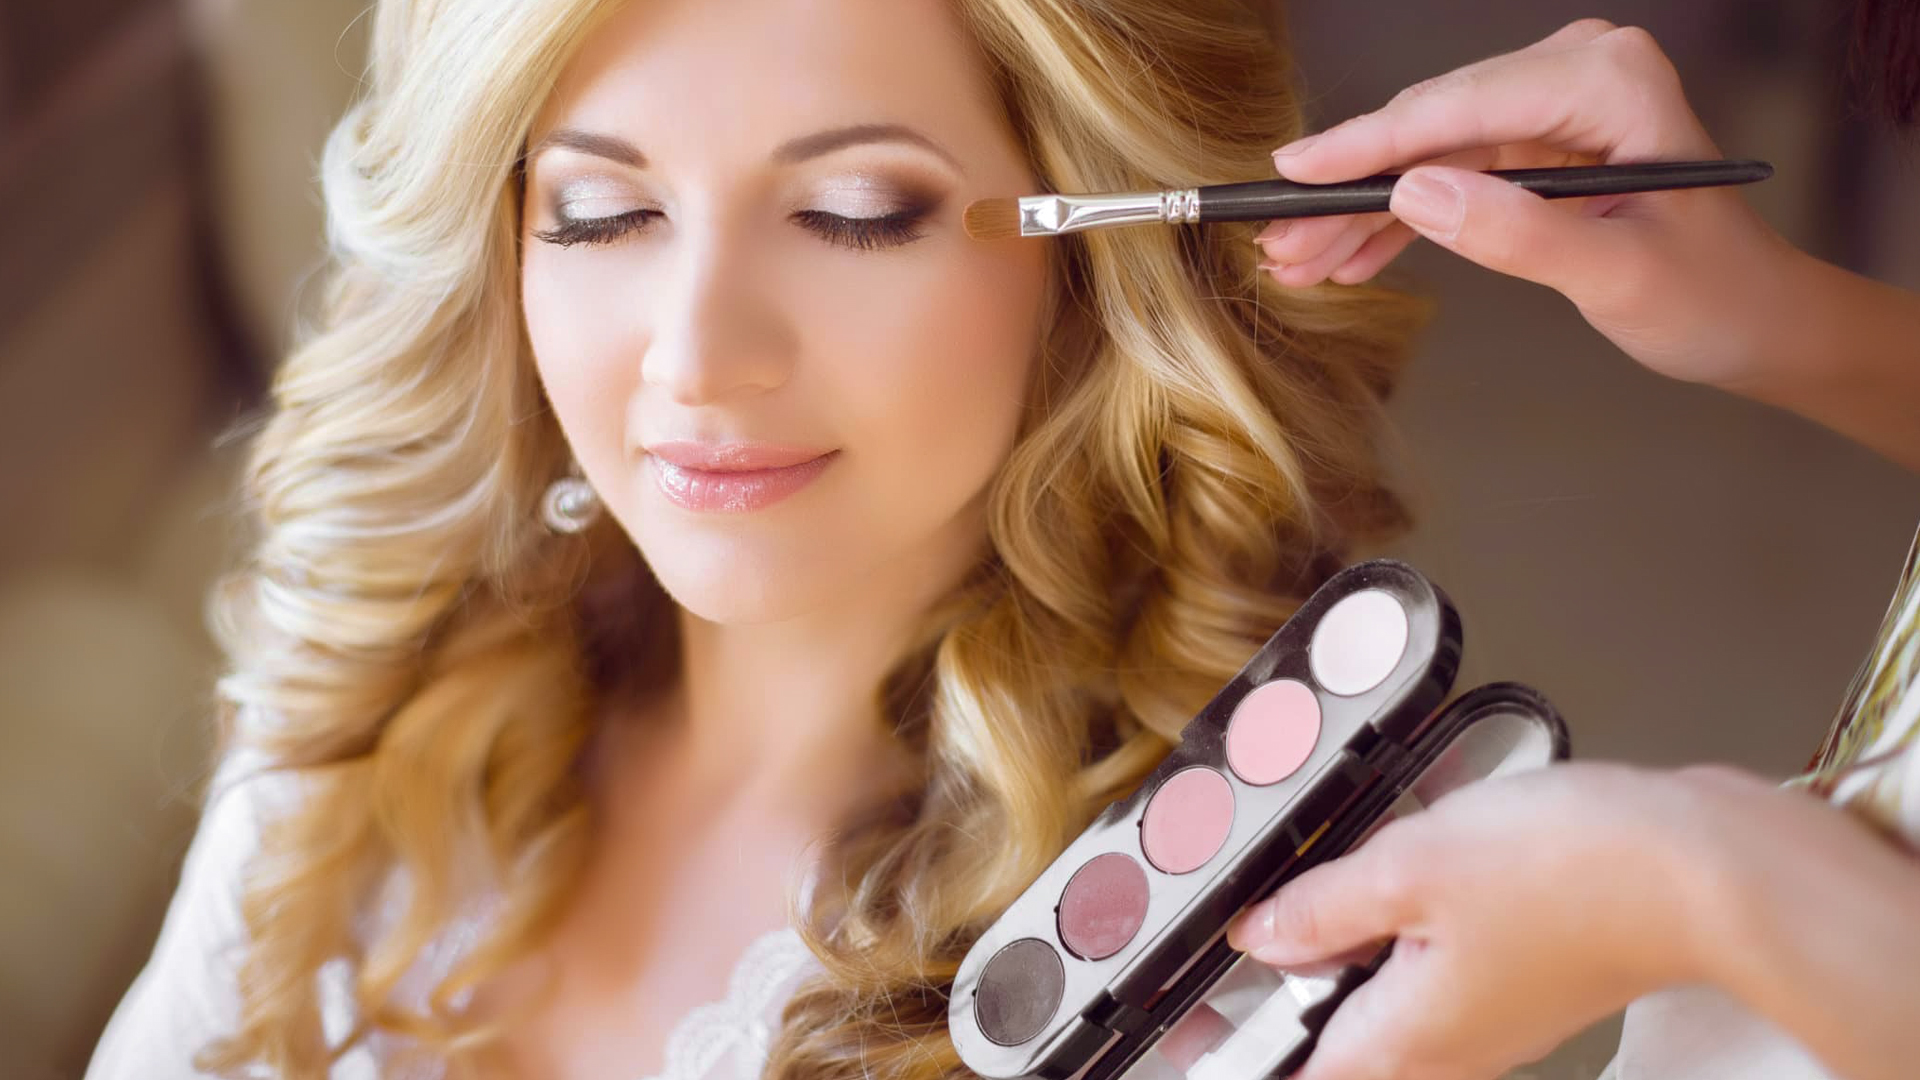 How To Plan And Start A Wedding Beauty Regimen – The Ultimate Beauty Checklist For Brides-To-Be